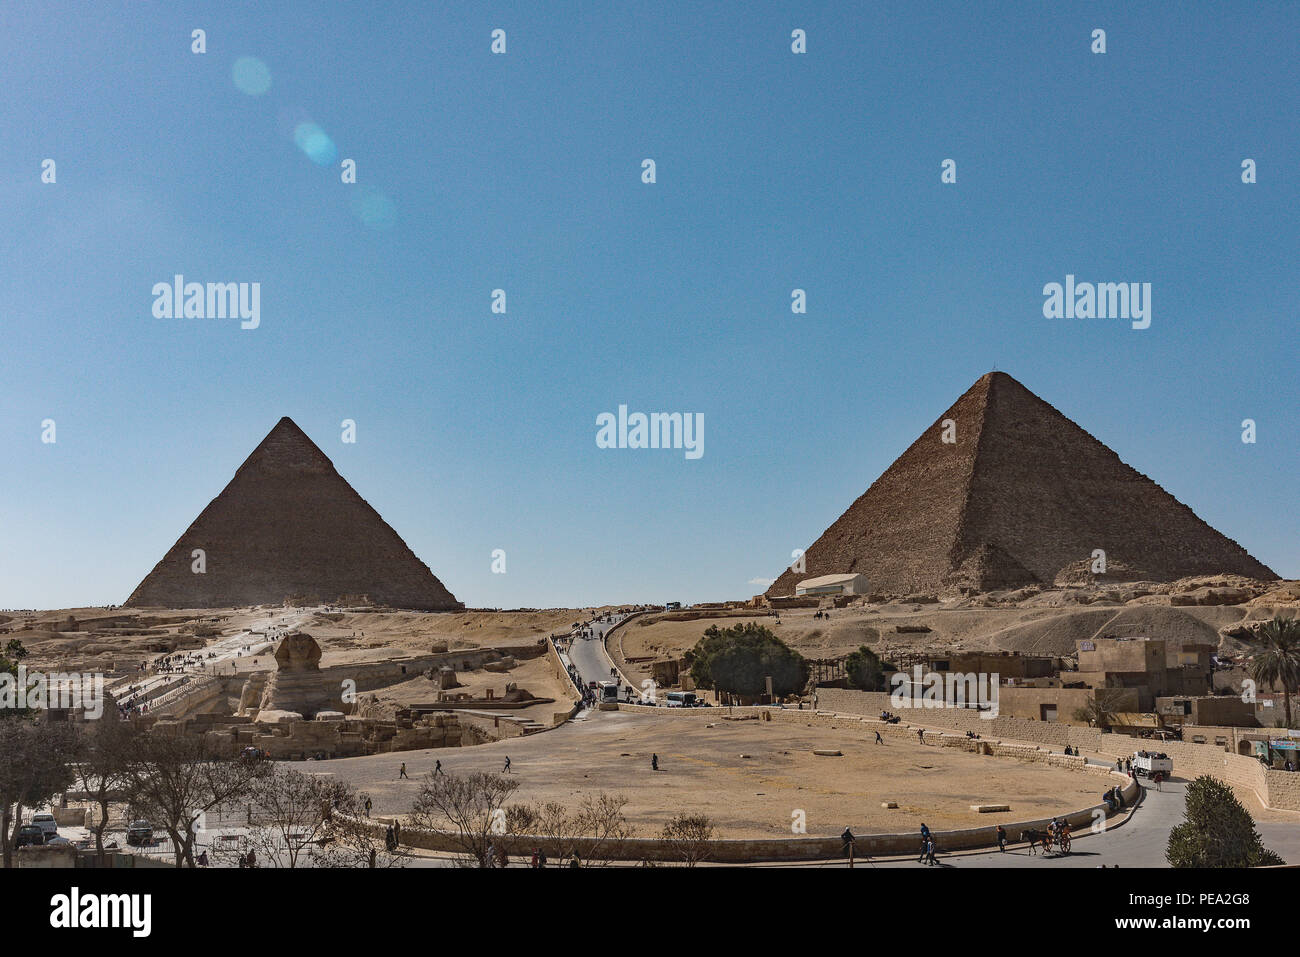 Pyramids and Sphinx on the Giza Plateau, Cairo, Egypt. - Stock Image